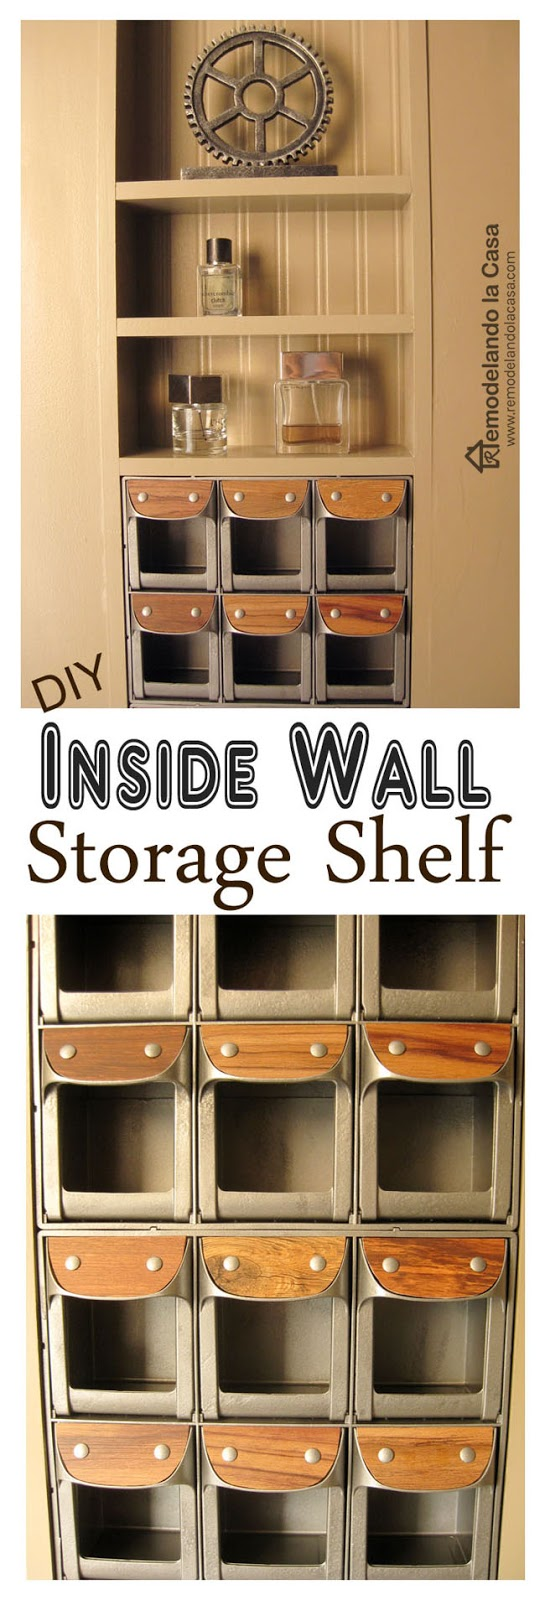 Remodelando la casa diy between the studs shelf closet stay tuned for more about this closet amipublicfo Images